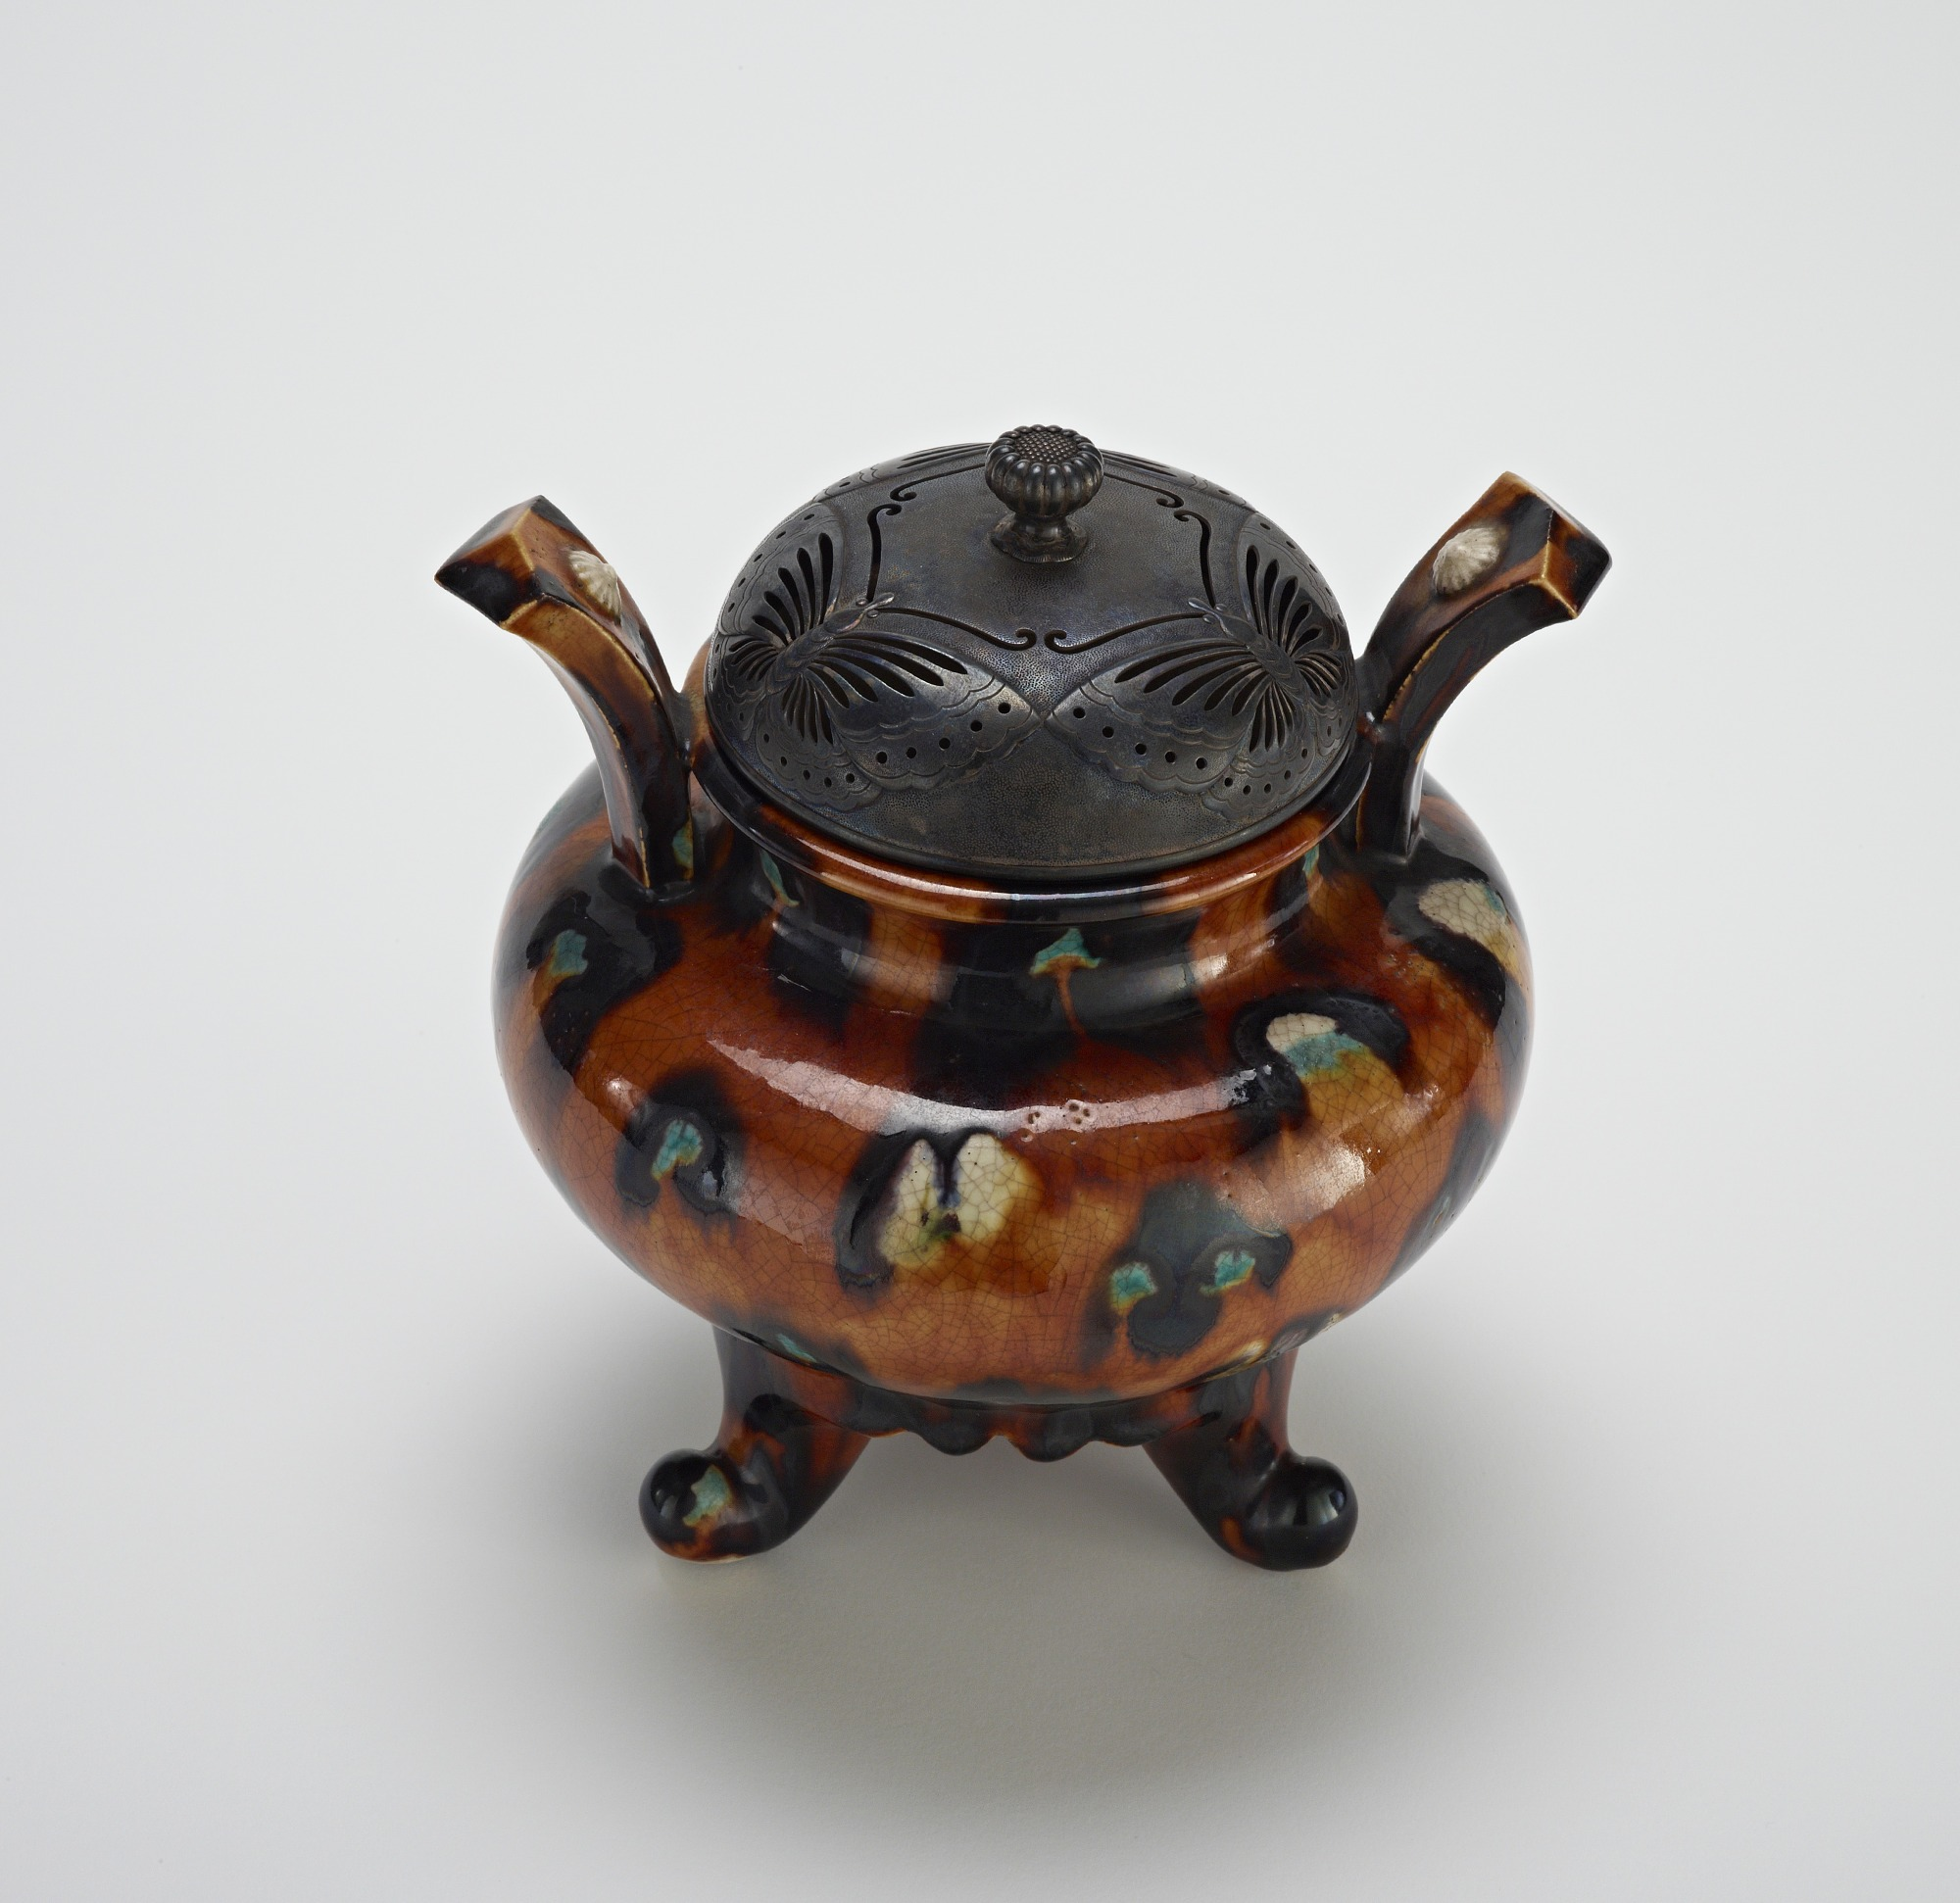 3/4 profile: Hirasa ware incense burner